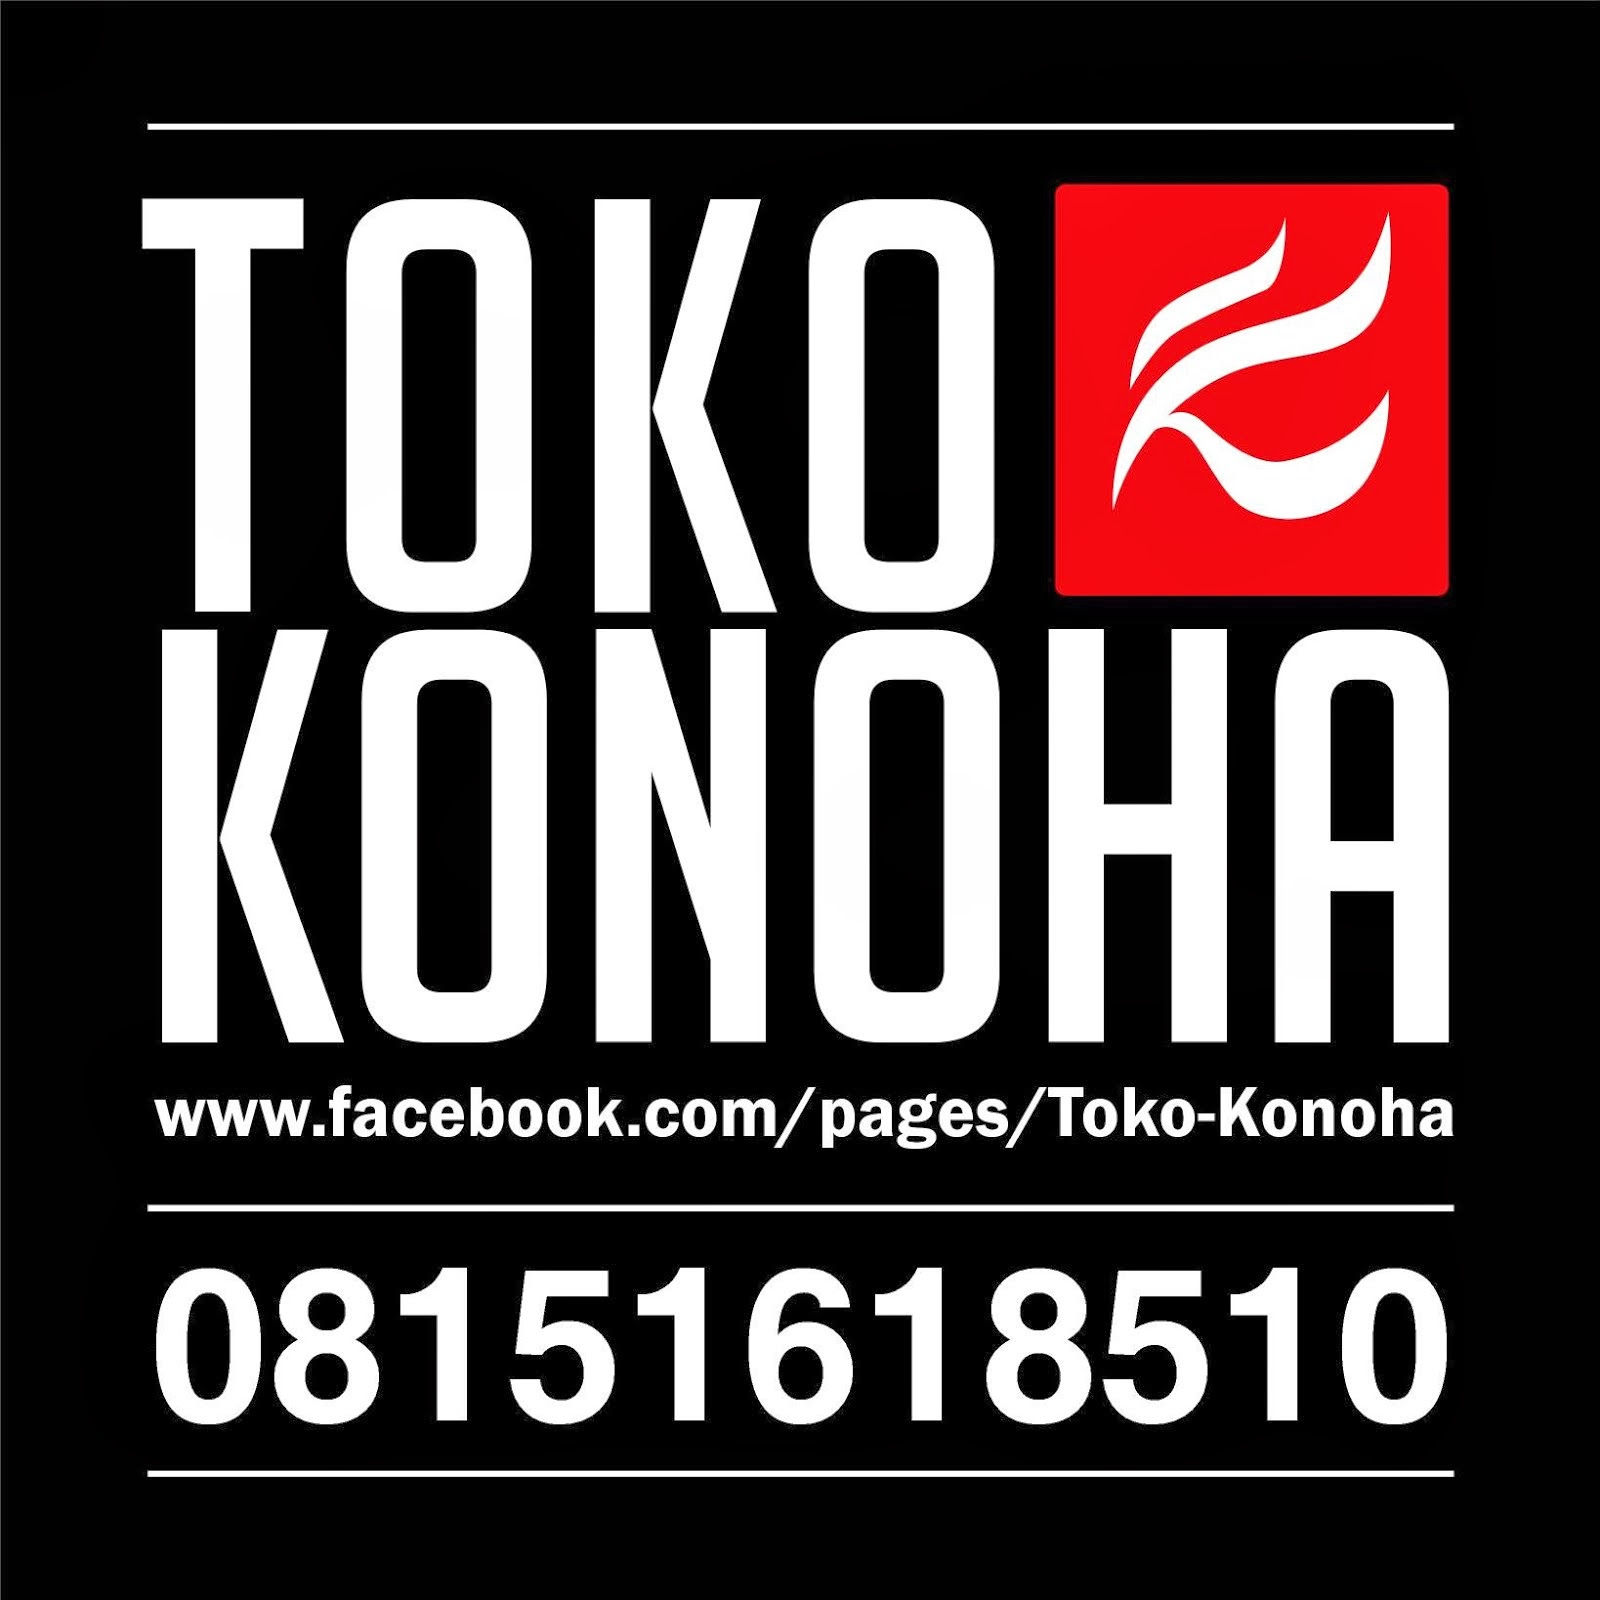 TOKO KONOHA ON FACEBOOK